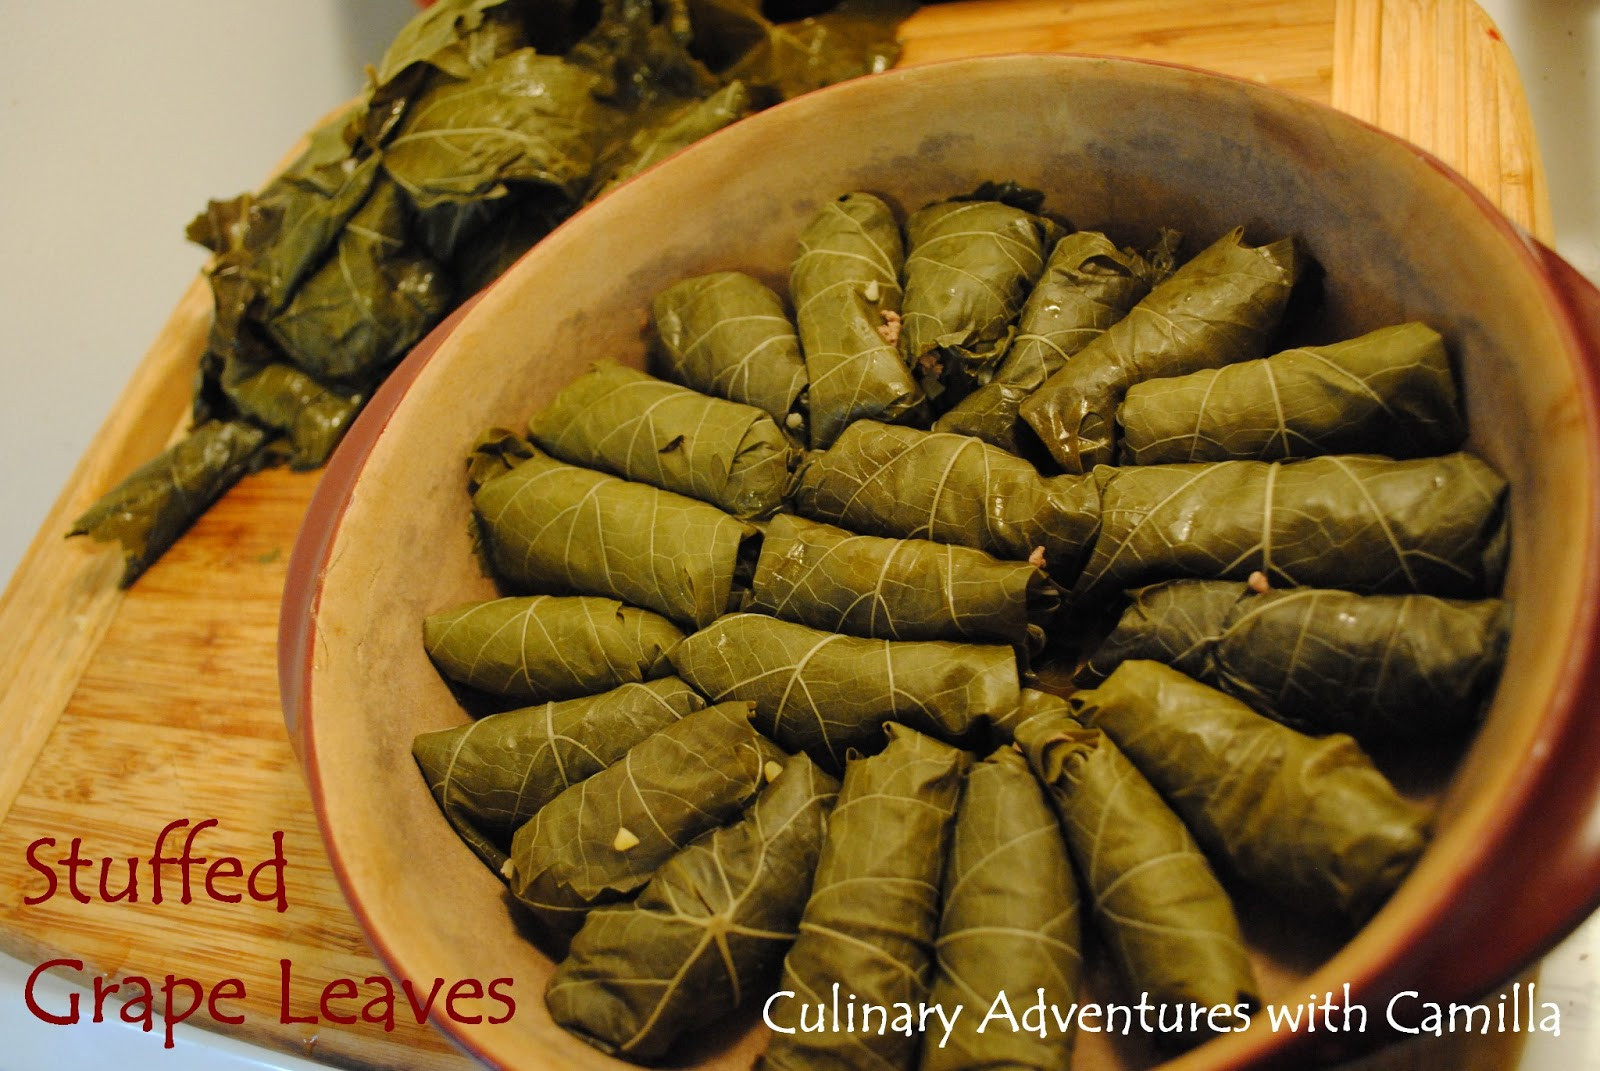 ... with Camilla: Fennel Pollen + Nutmeg-Scented Stuffed Grape Leaves